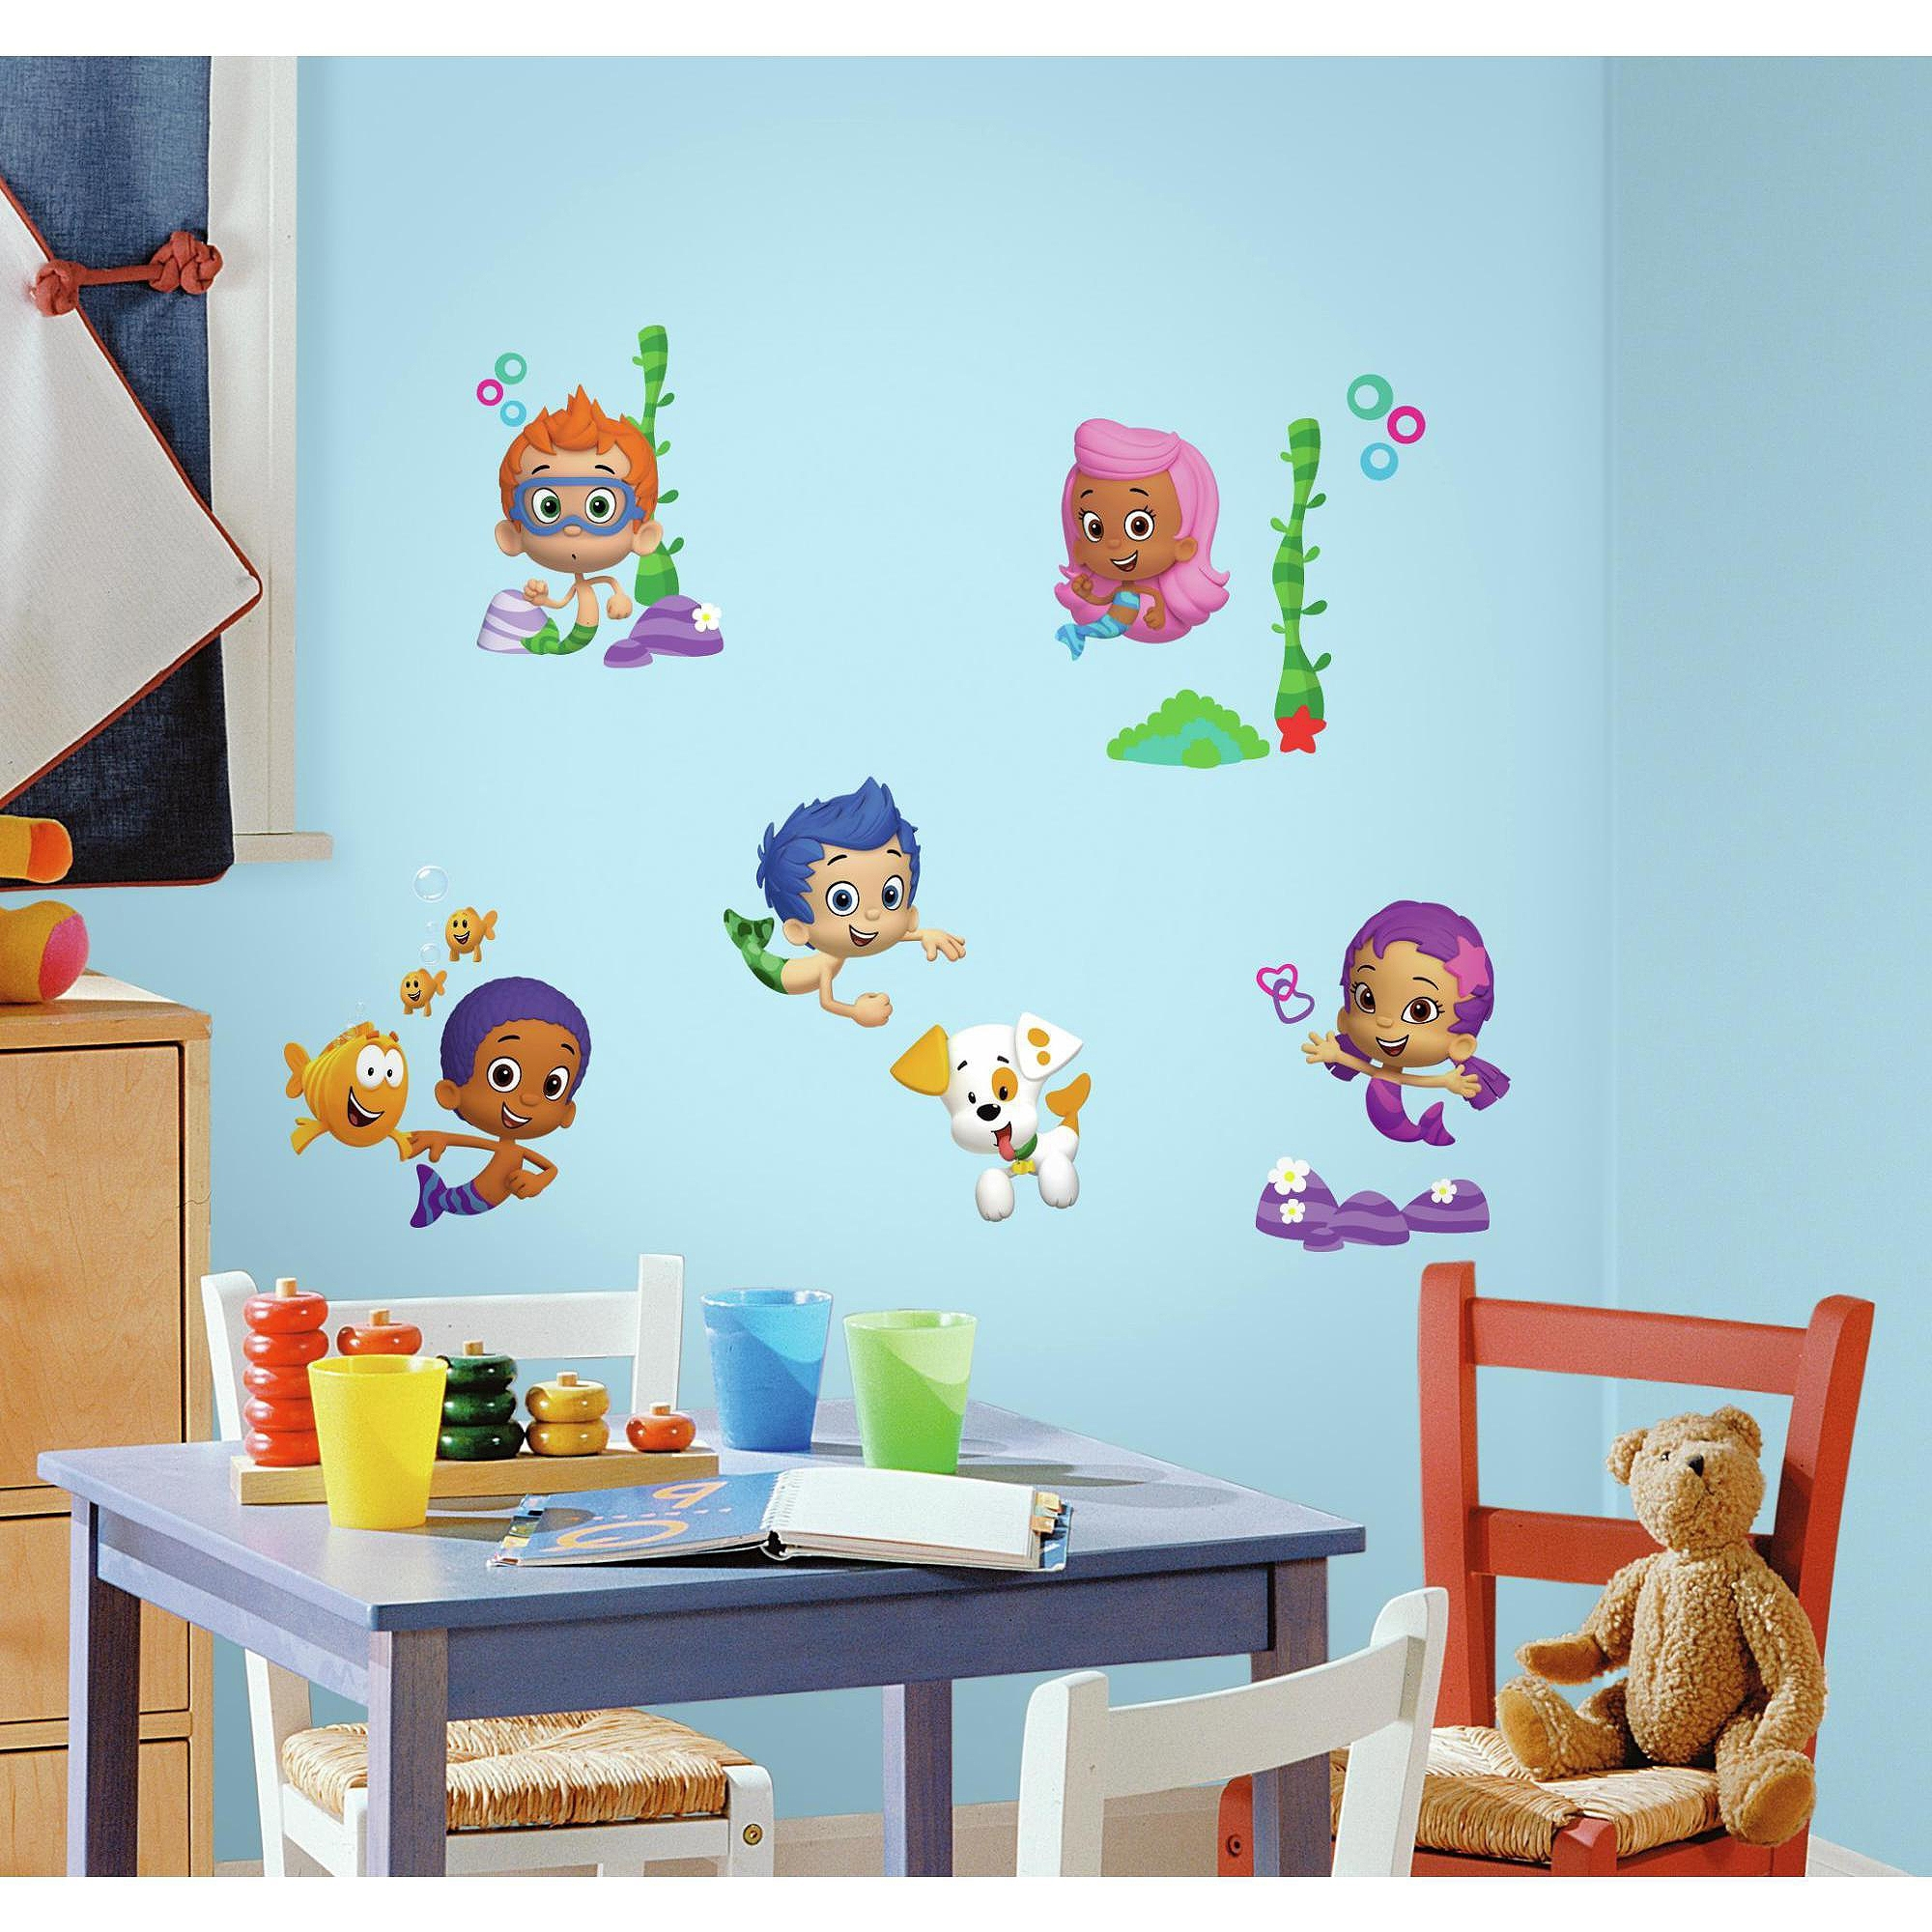 Widely Used Walmart Wall Stickers Regarding Bubble Guppies Peel And Stick Wall Decals – Walmart (View 15 of 15)